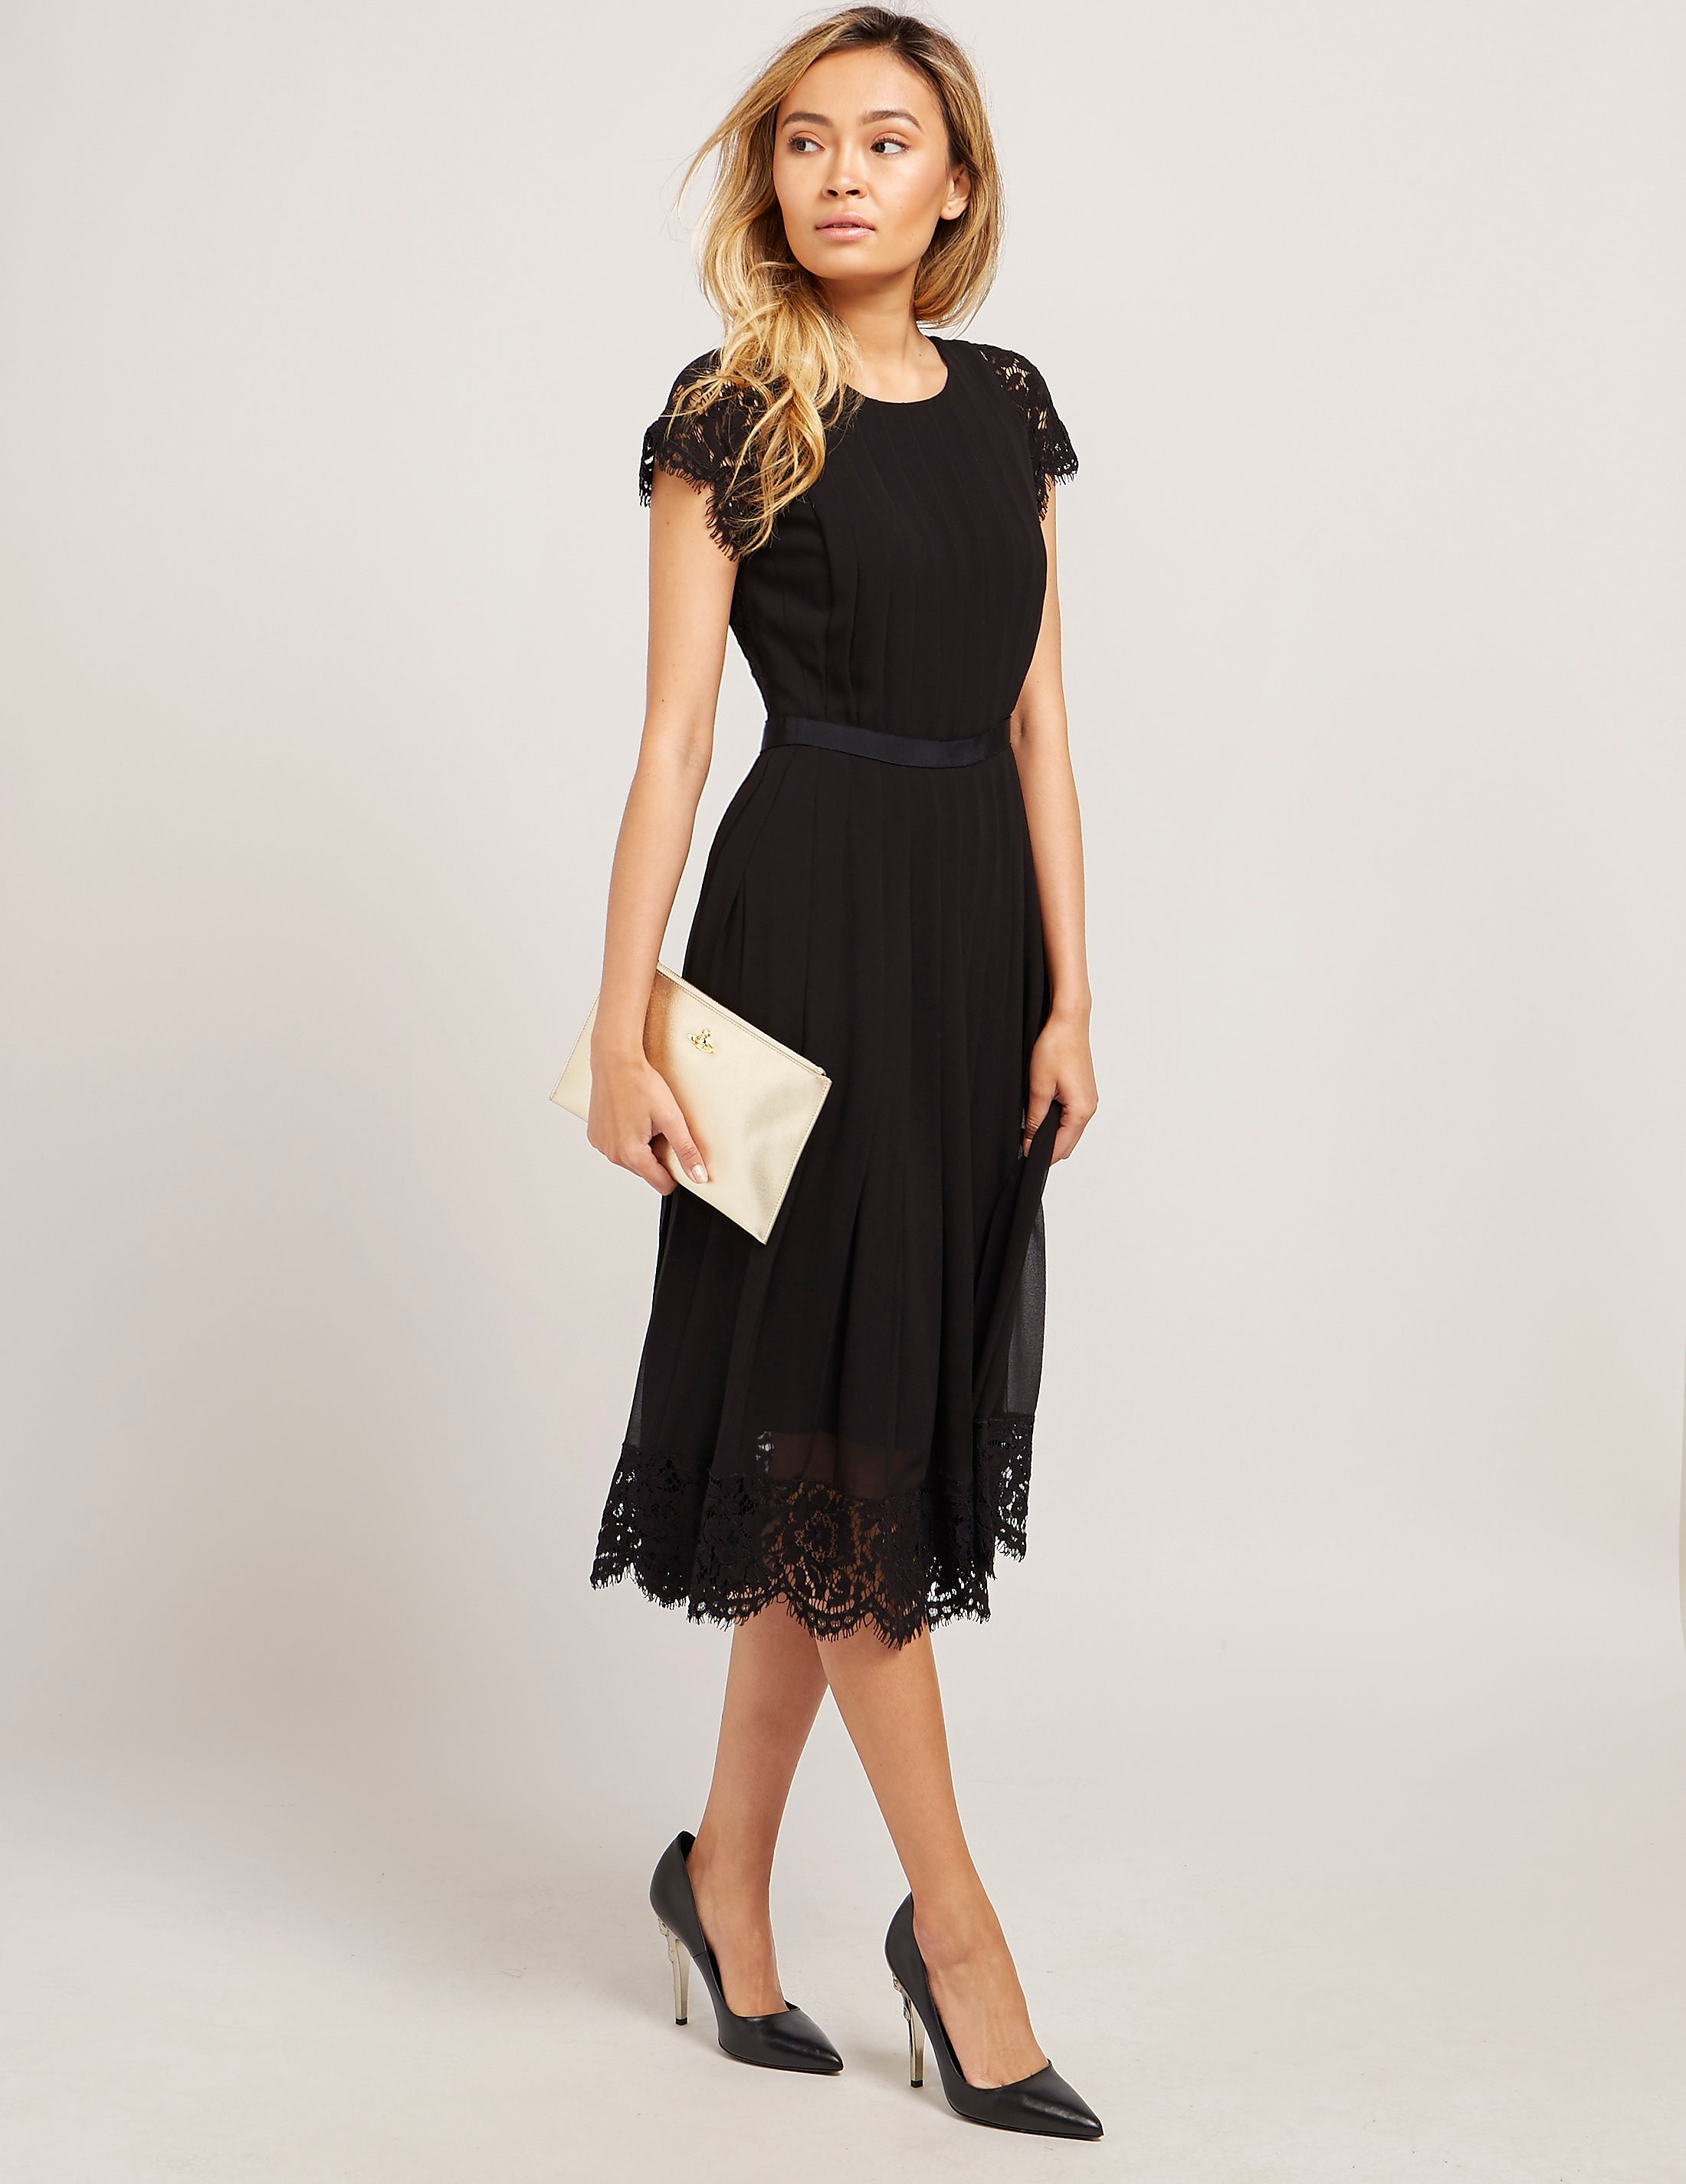 Paul Smith Floral Lace Pleated Dress